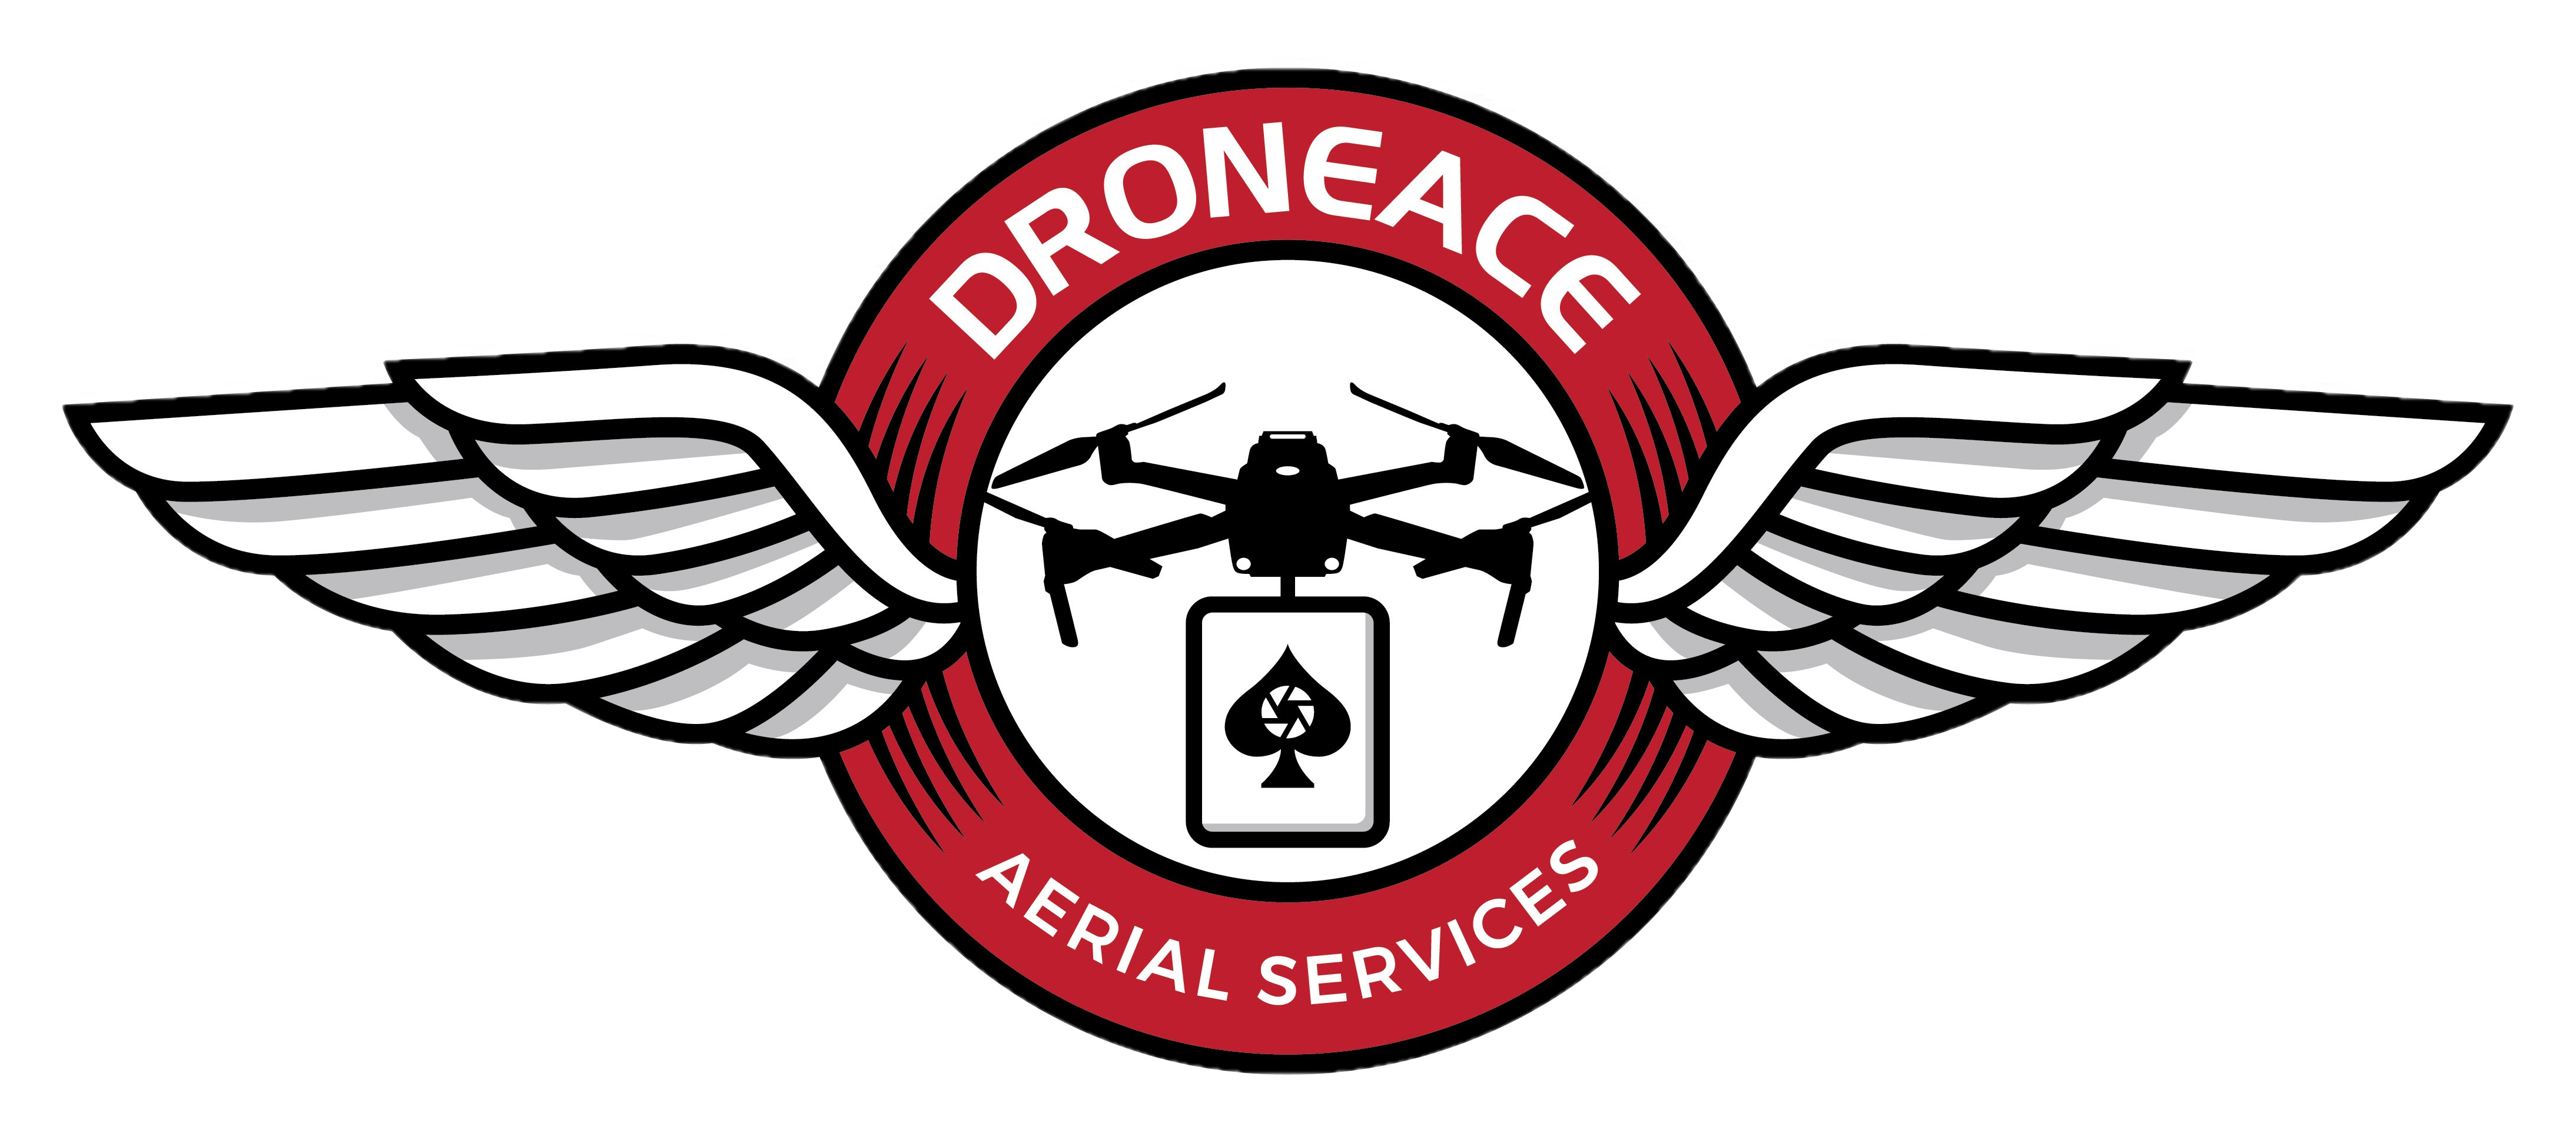 Drone Services UK | Droneace